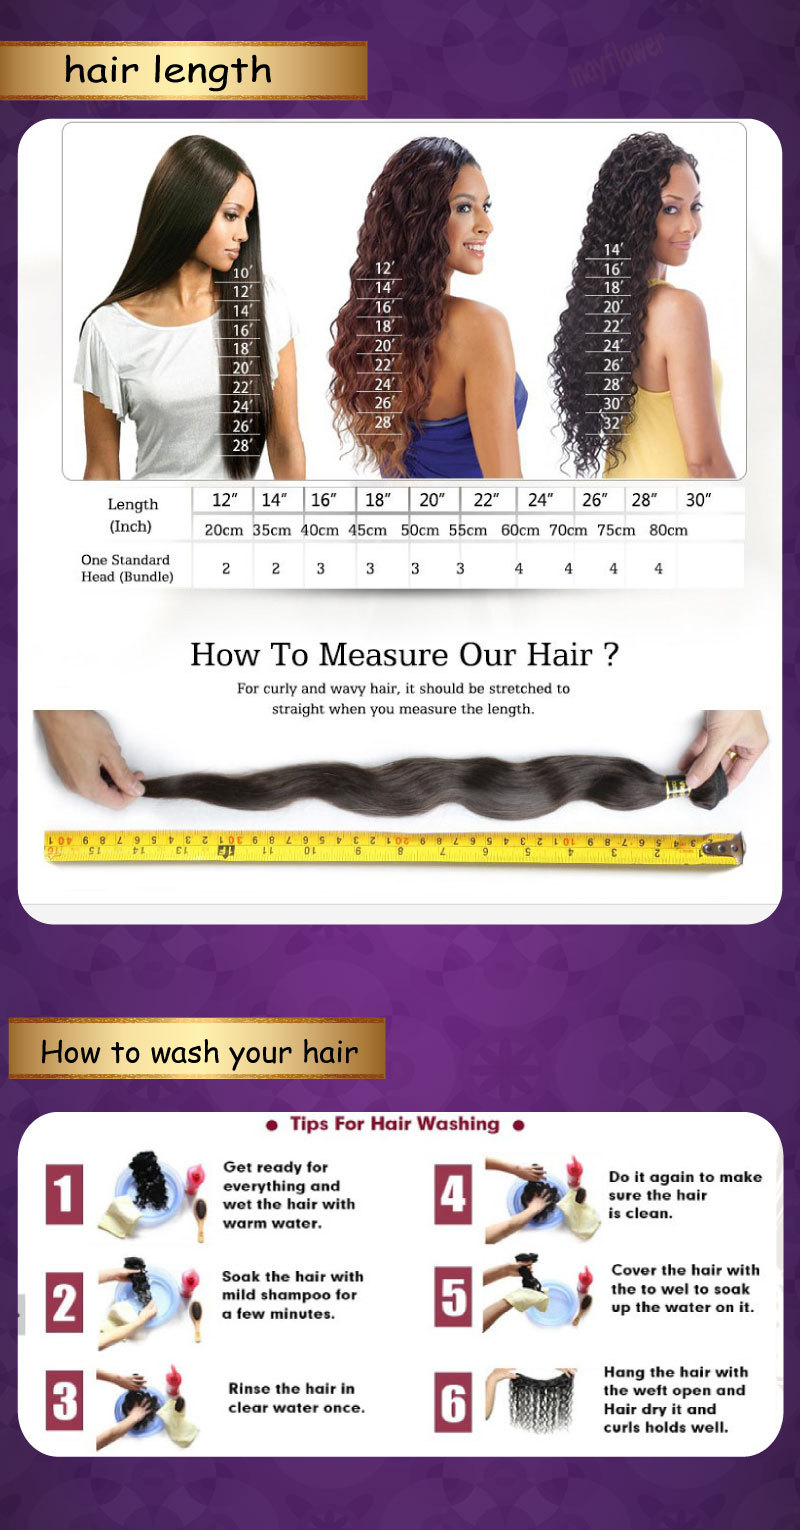 hot sale body wave double swen virgin human hair peruvian hair extension 8-26inch in stock fast shipping